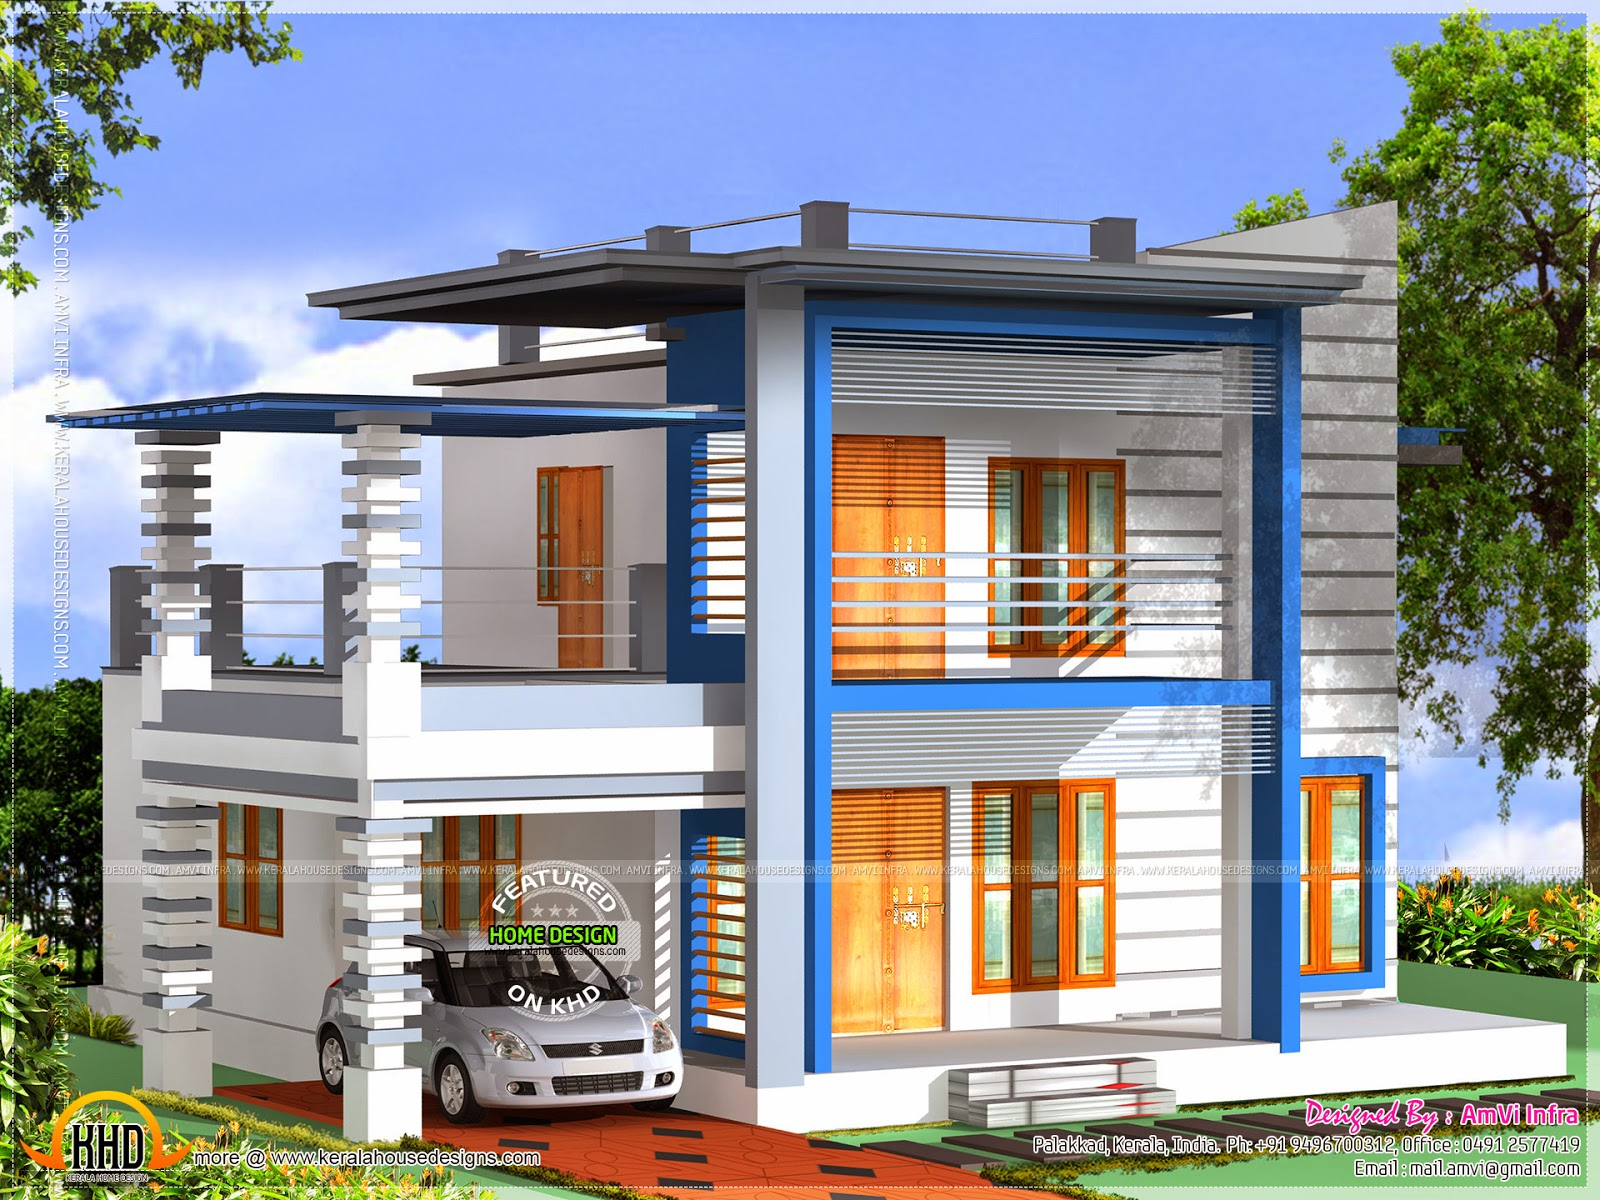 3D 3 Bedroom House Plans with Views